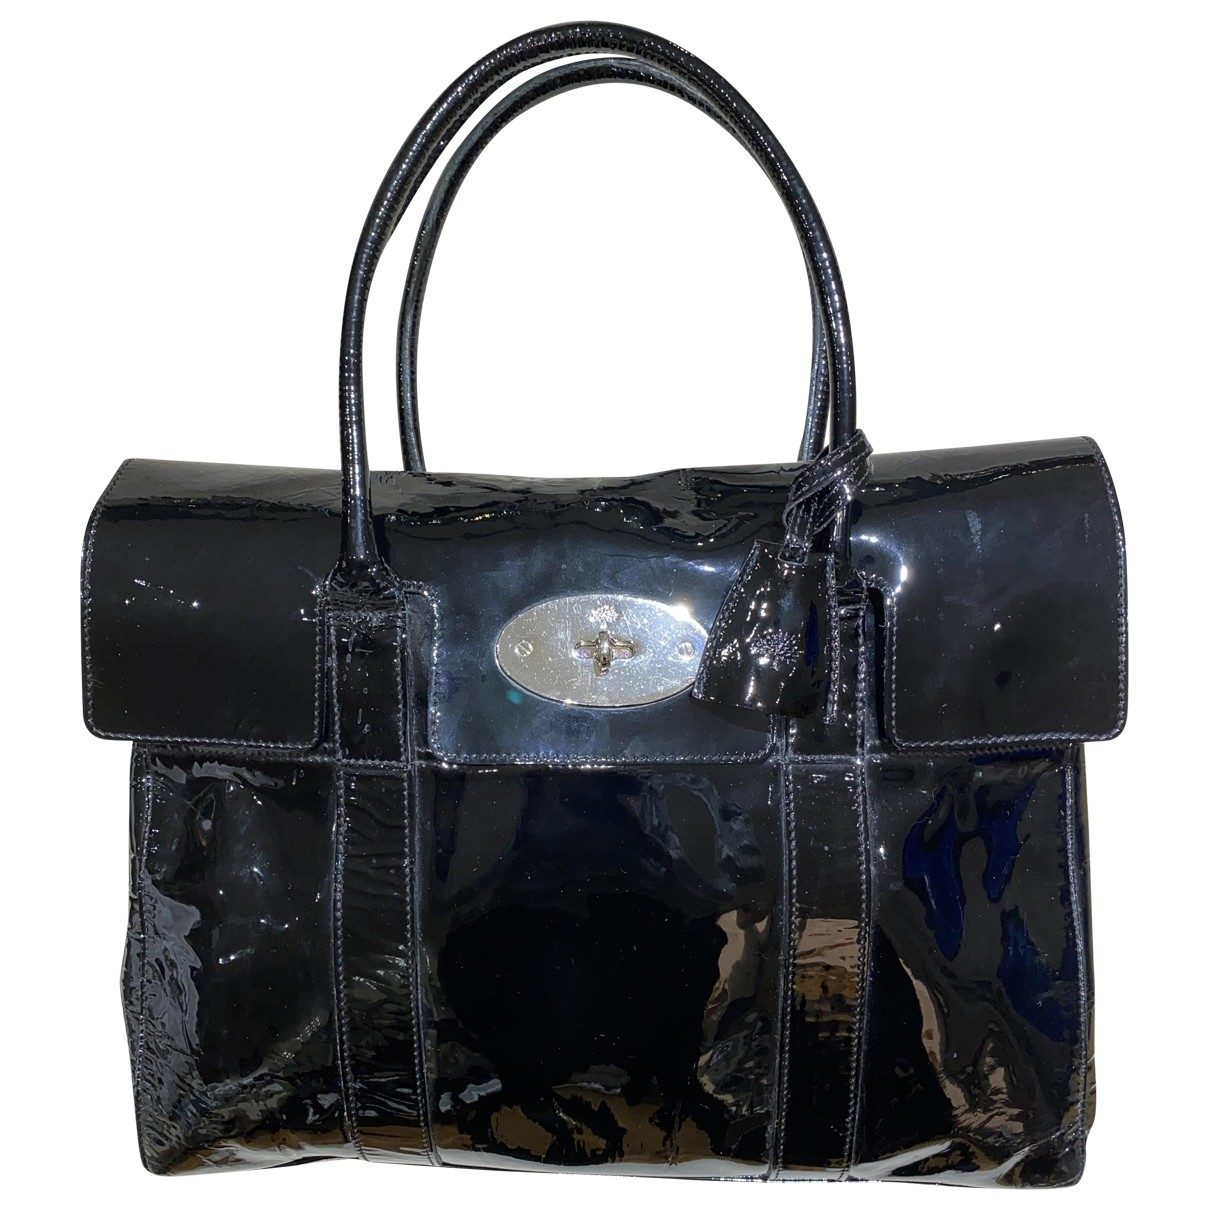 Mulberry Bayswater Black Patent leather handbag for Women \N